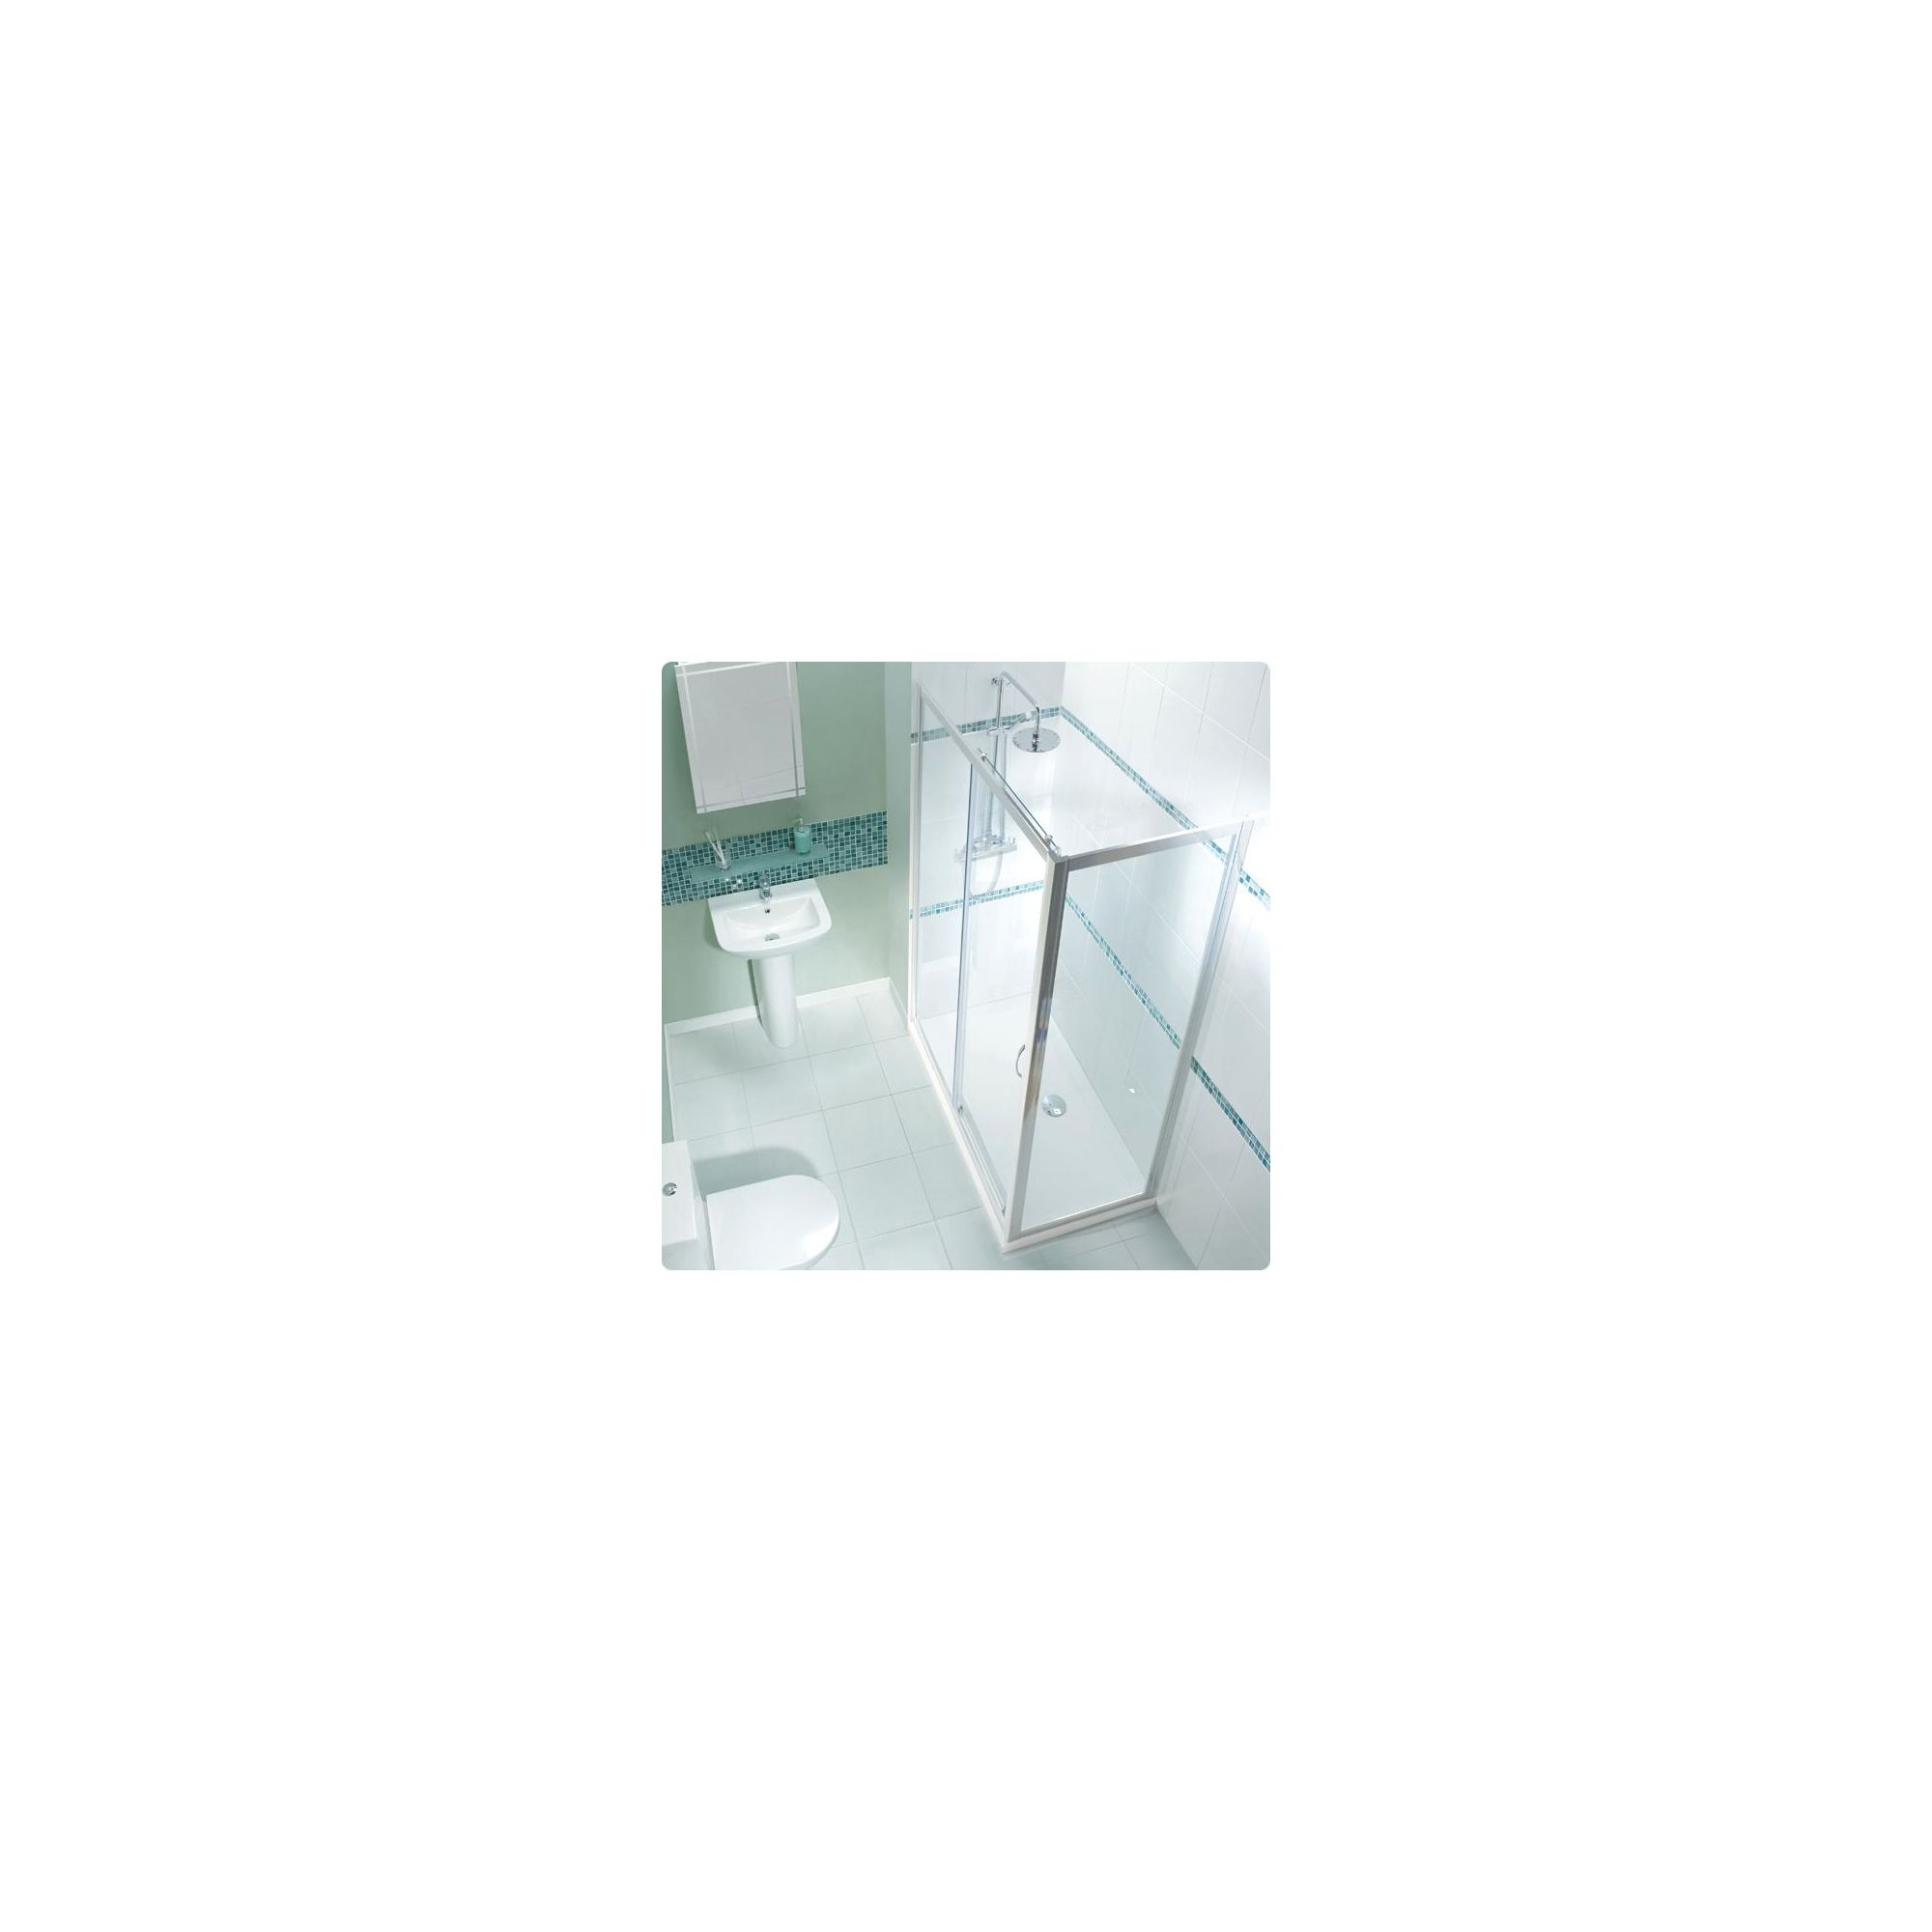 Balterley Framed Sliding Shower Enclosure, 1000mm x 700mm, Low Profile Tray, 6mm Glass at Tesco Direct